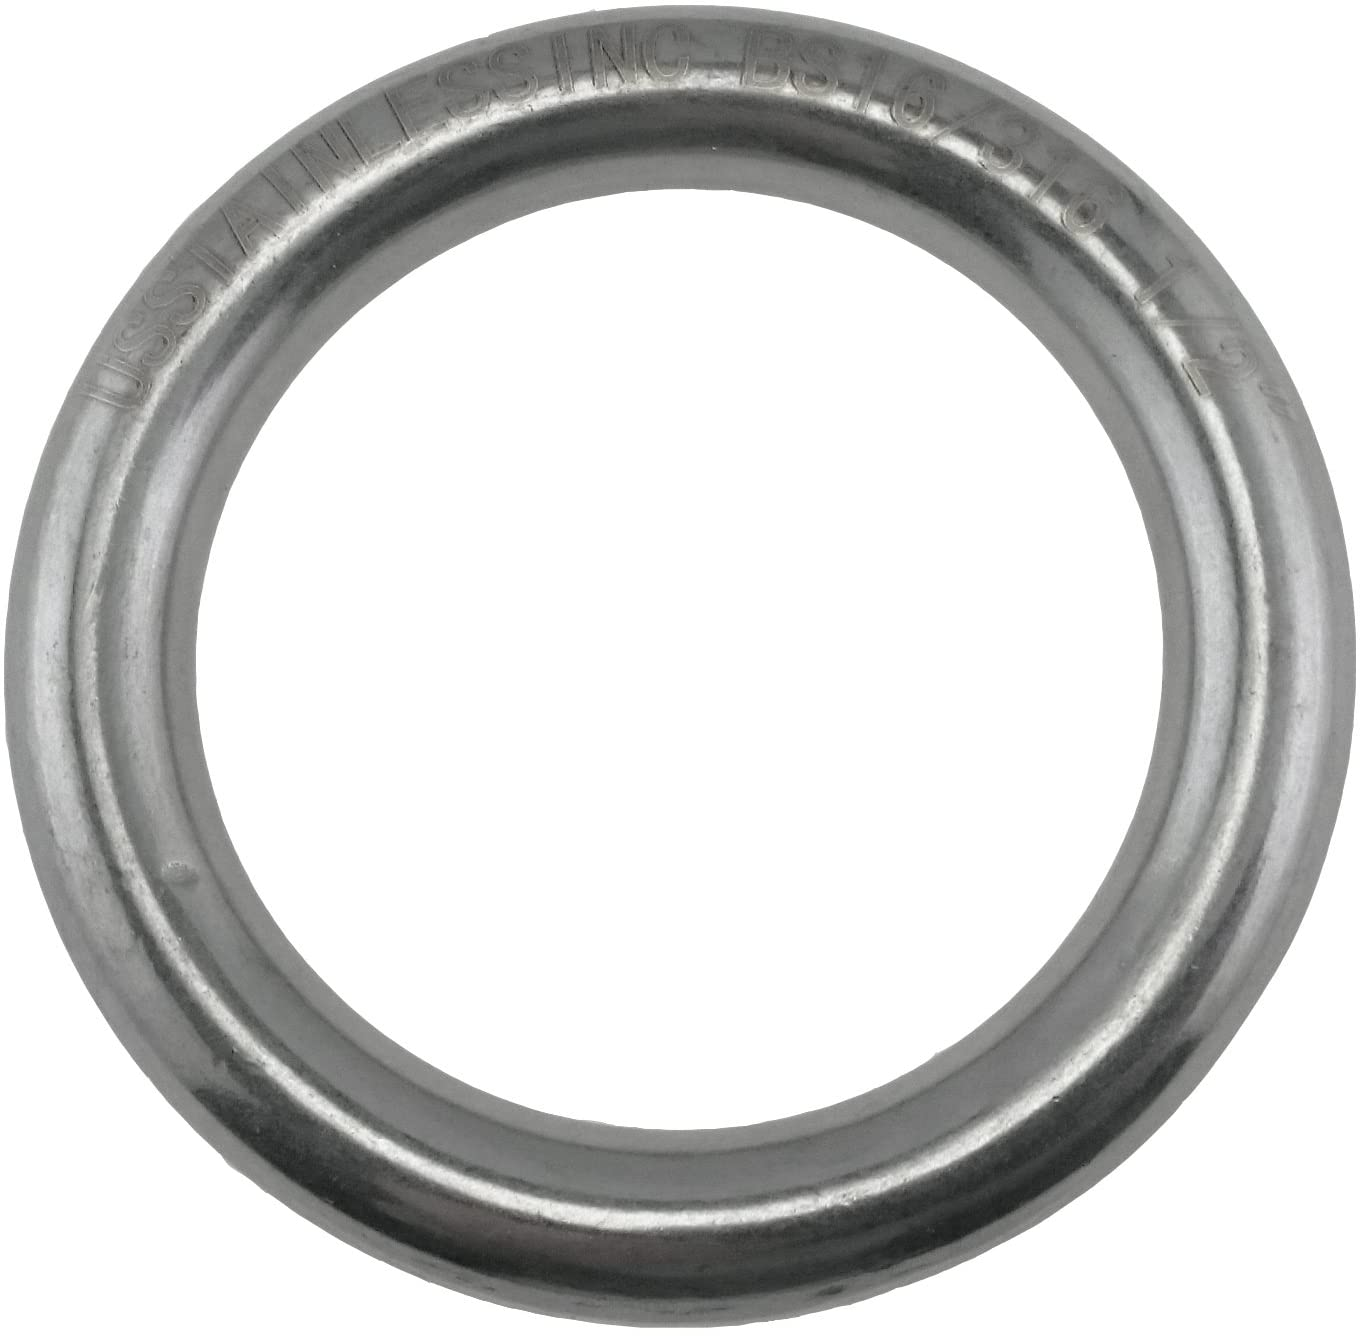 Stainless Steel 316 Round Ring Welded 1/2